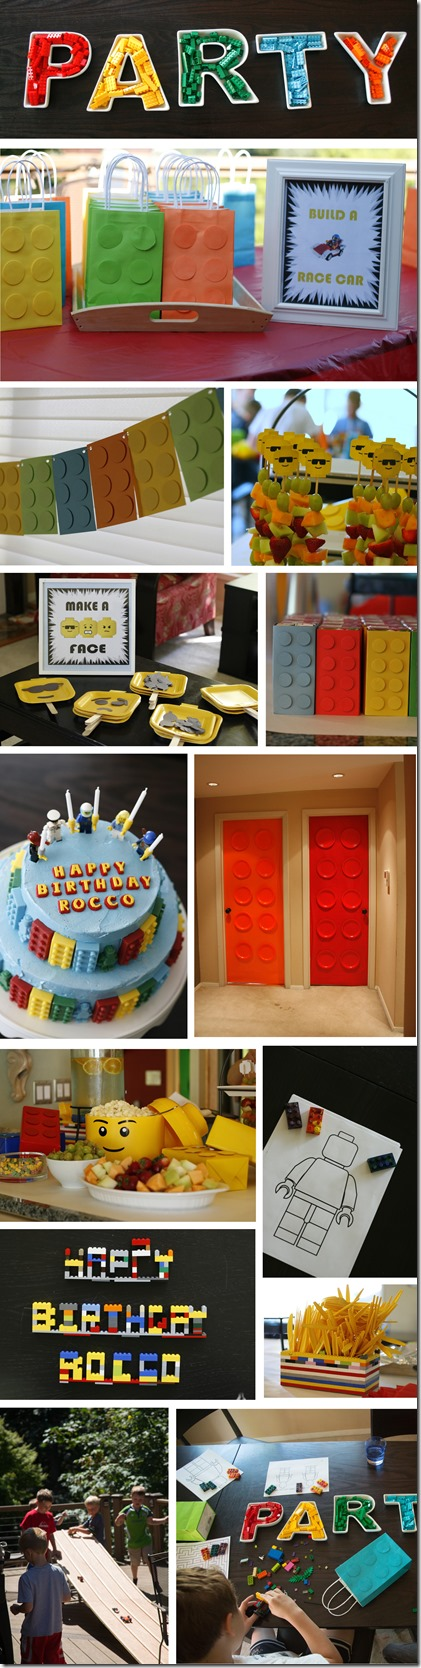 lego party pic collage